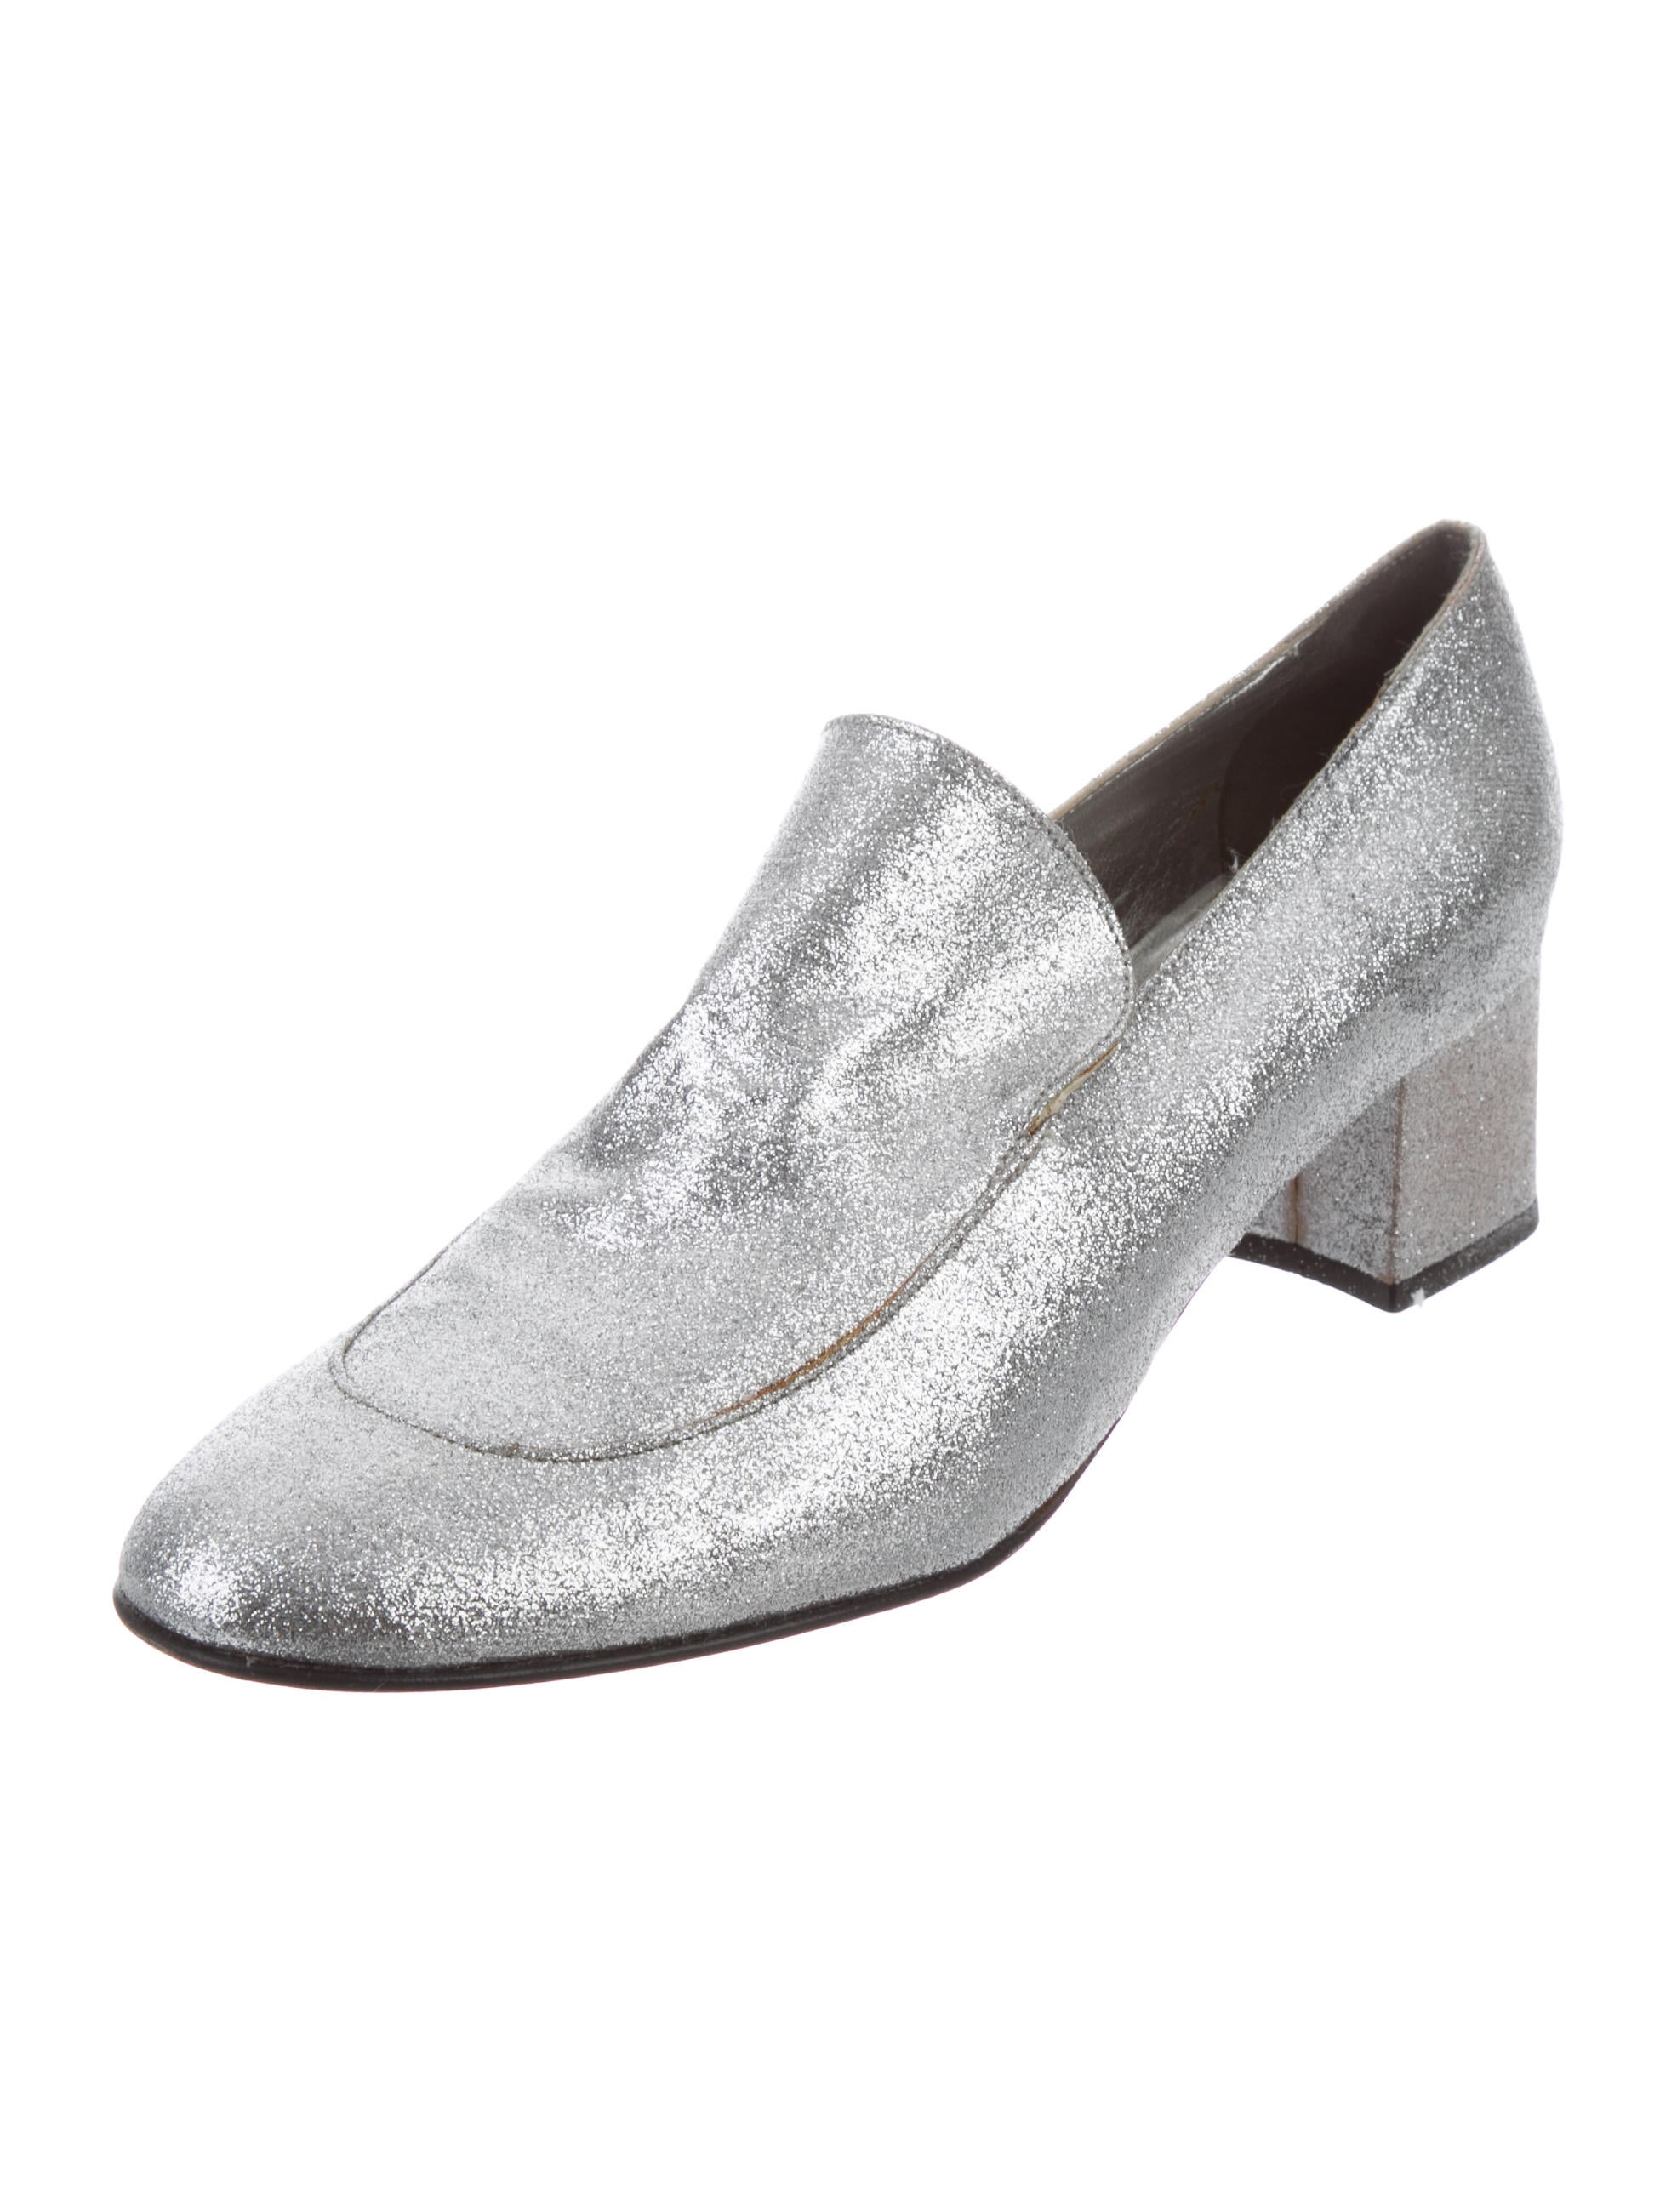 Stephane Kélian Round-Toe Glitter Pumps looking for cheap price wcUtpgJ